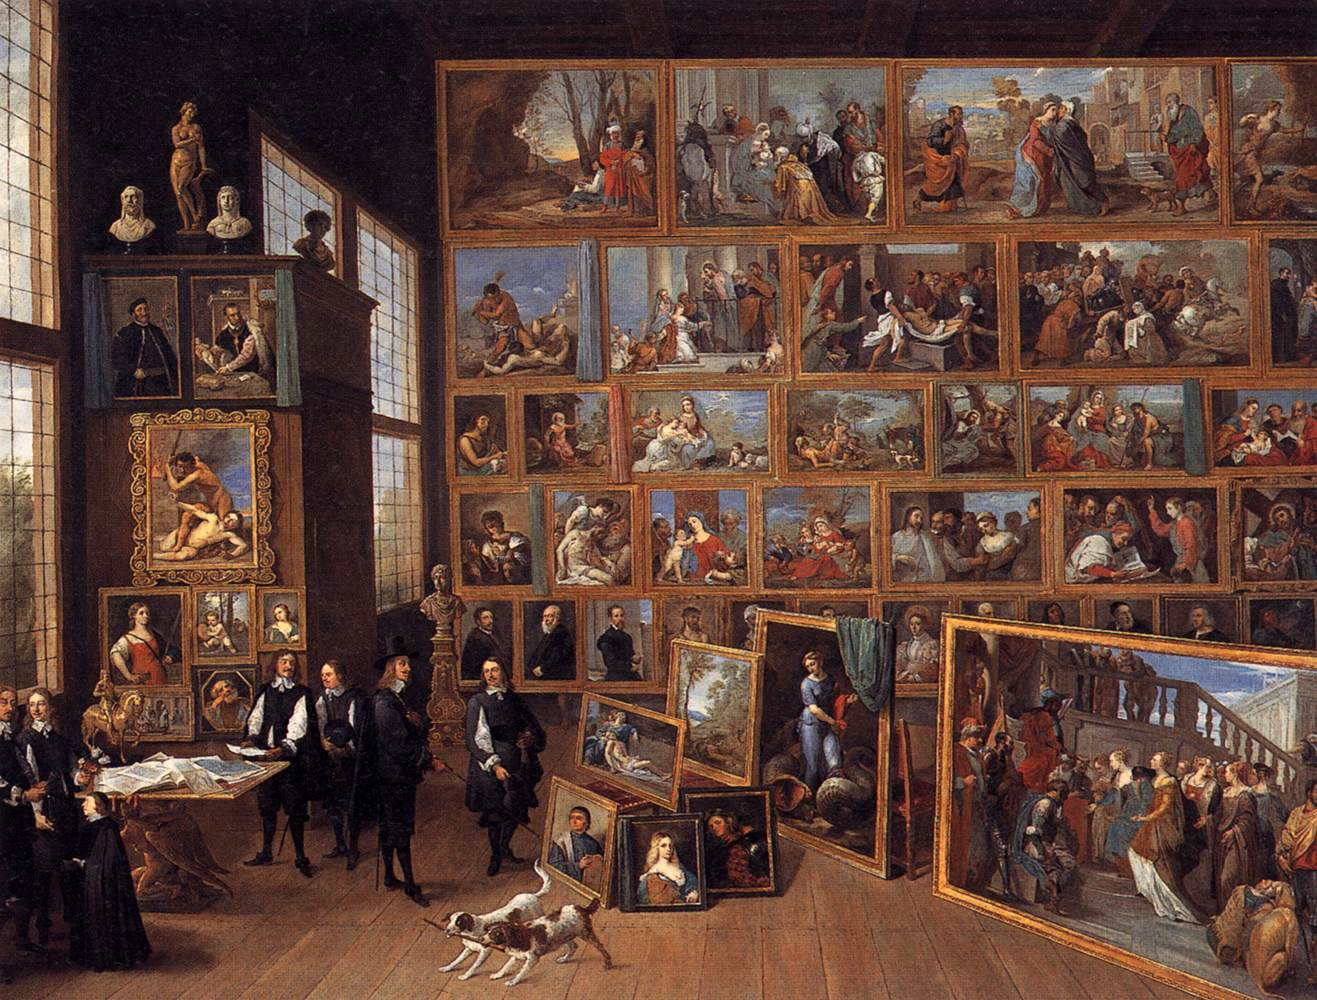 http://uploads1.wikipaintings.org/images/david-teniers-the-younger/the-archduke-leopold-wilhelm-in-his-picture-gallery-in-brussels-1651.jpg